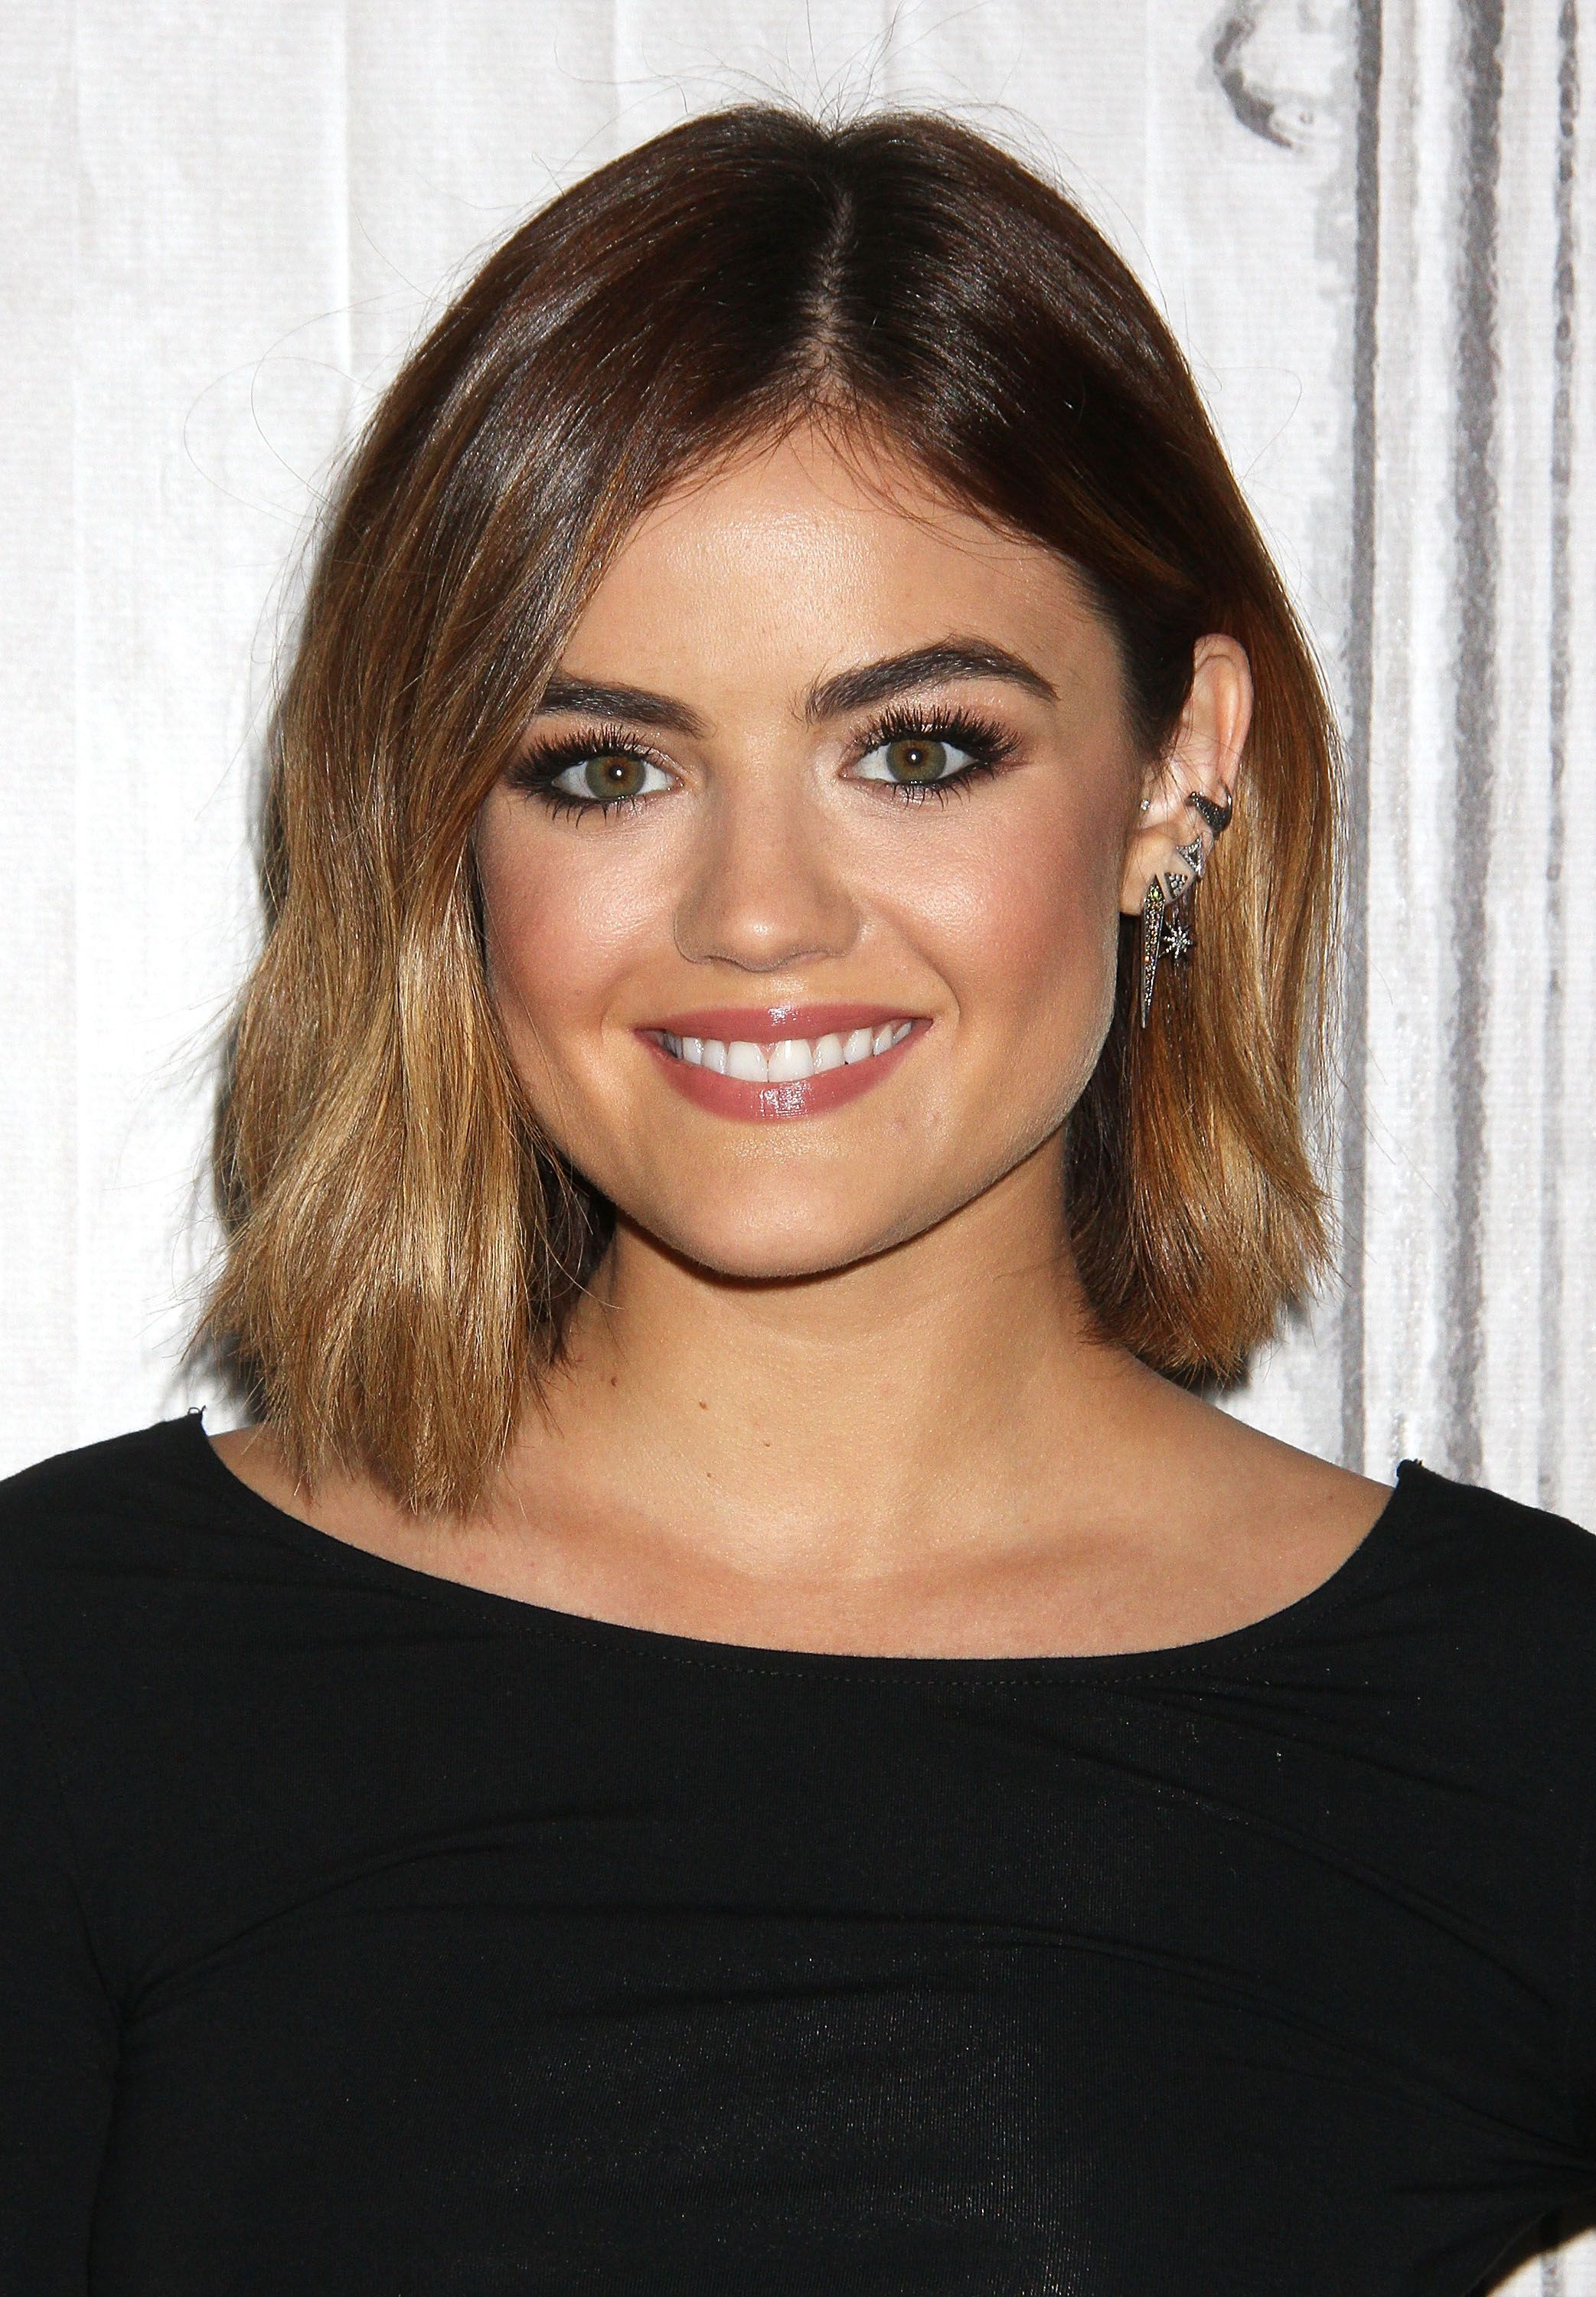 Lucy haleus blonde days are over u see her new hair color hair